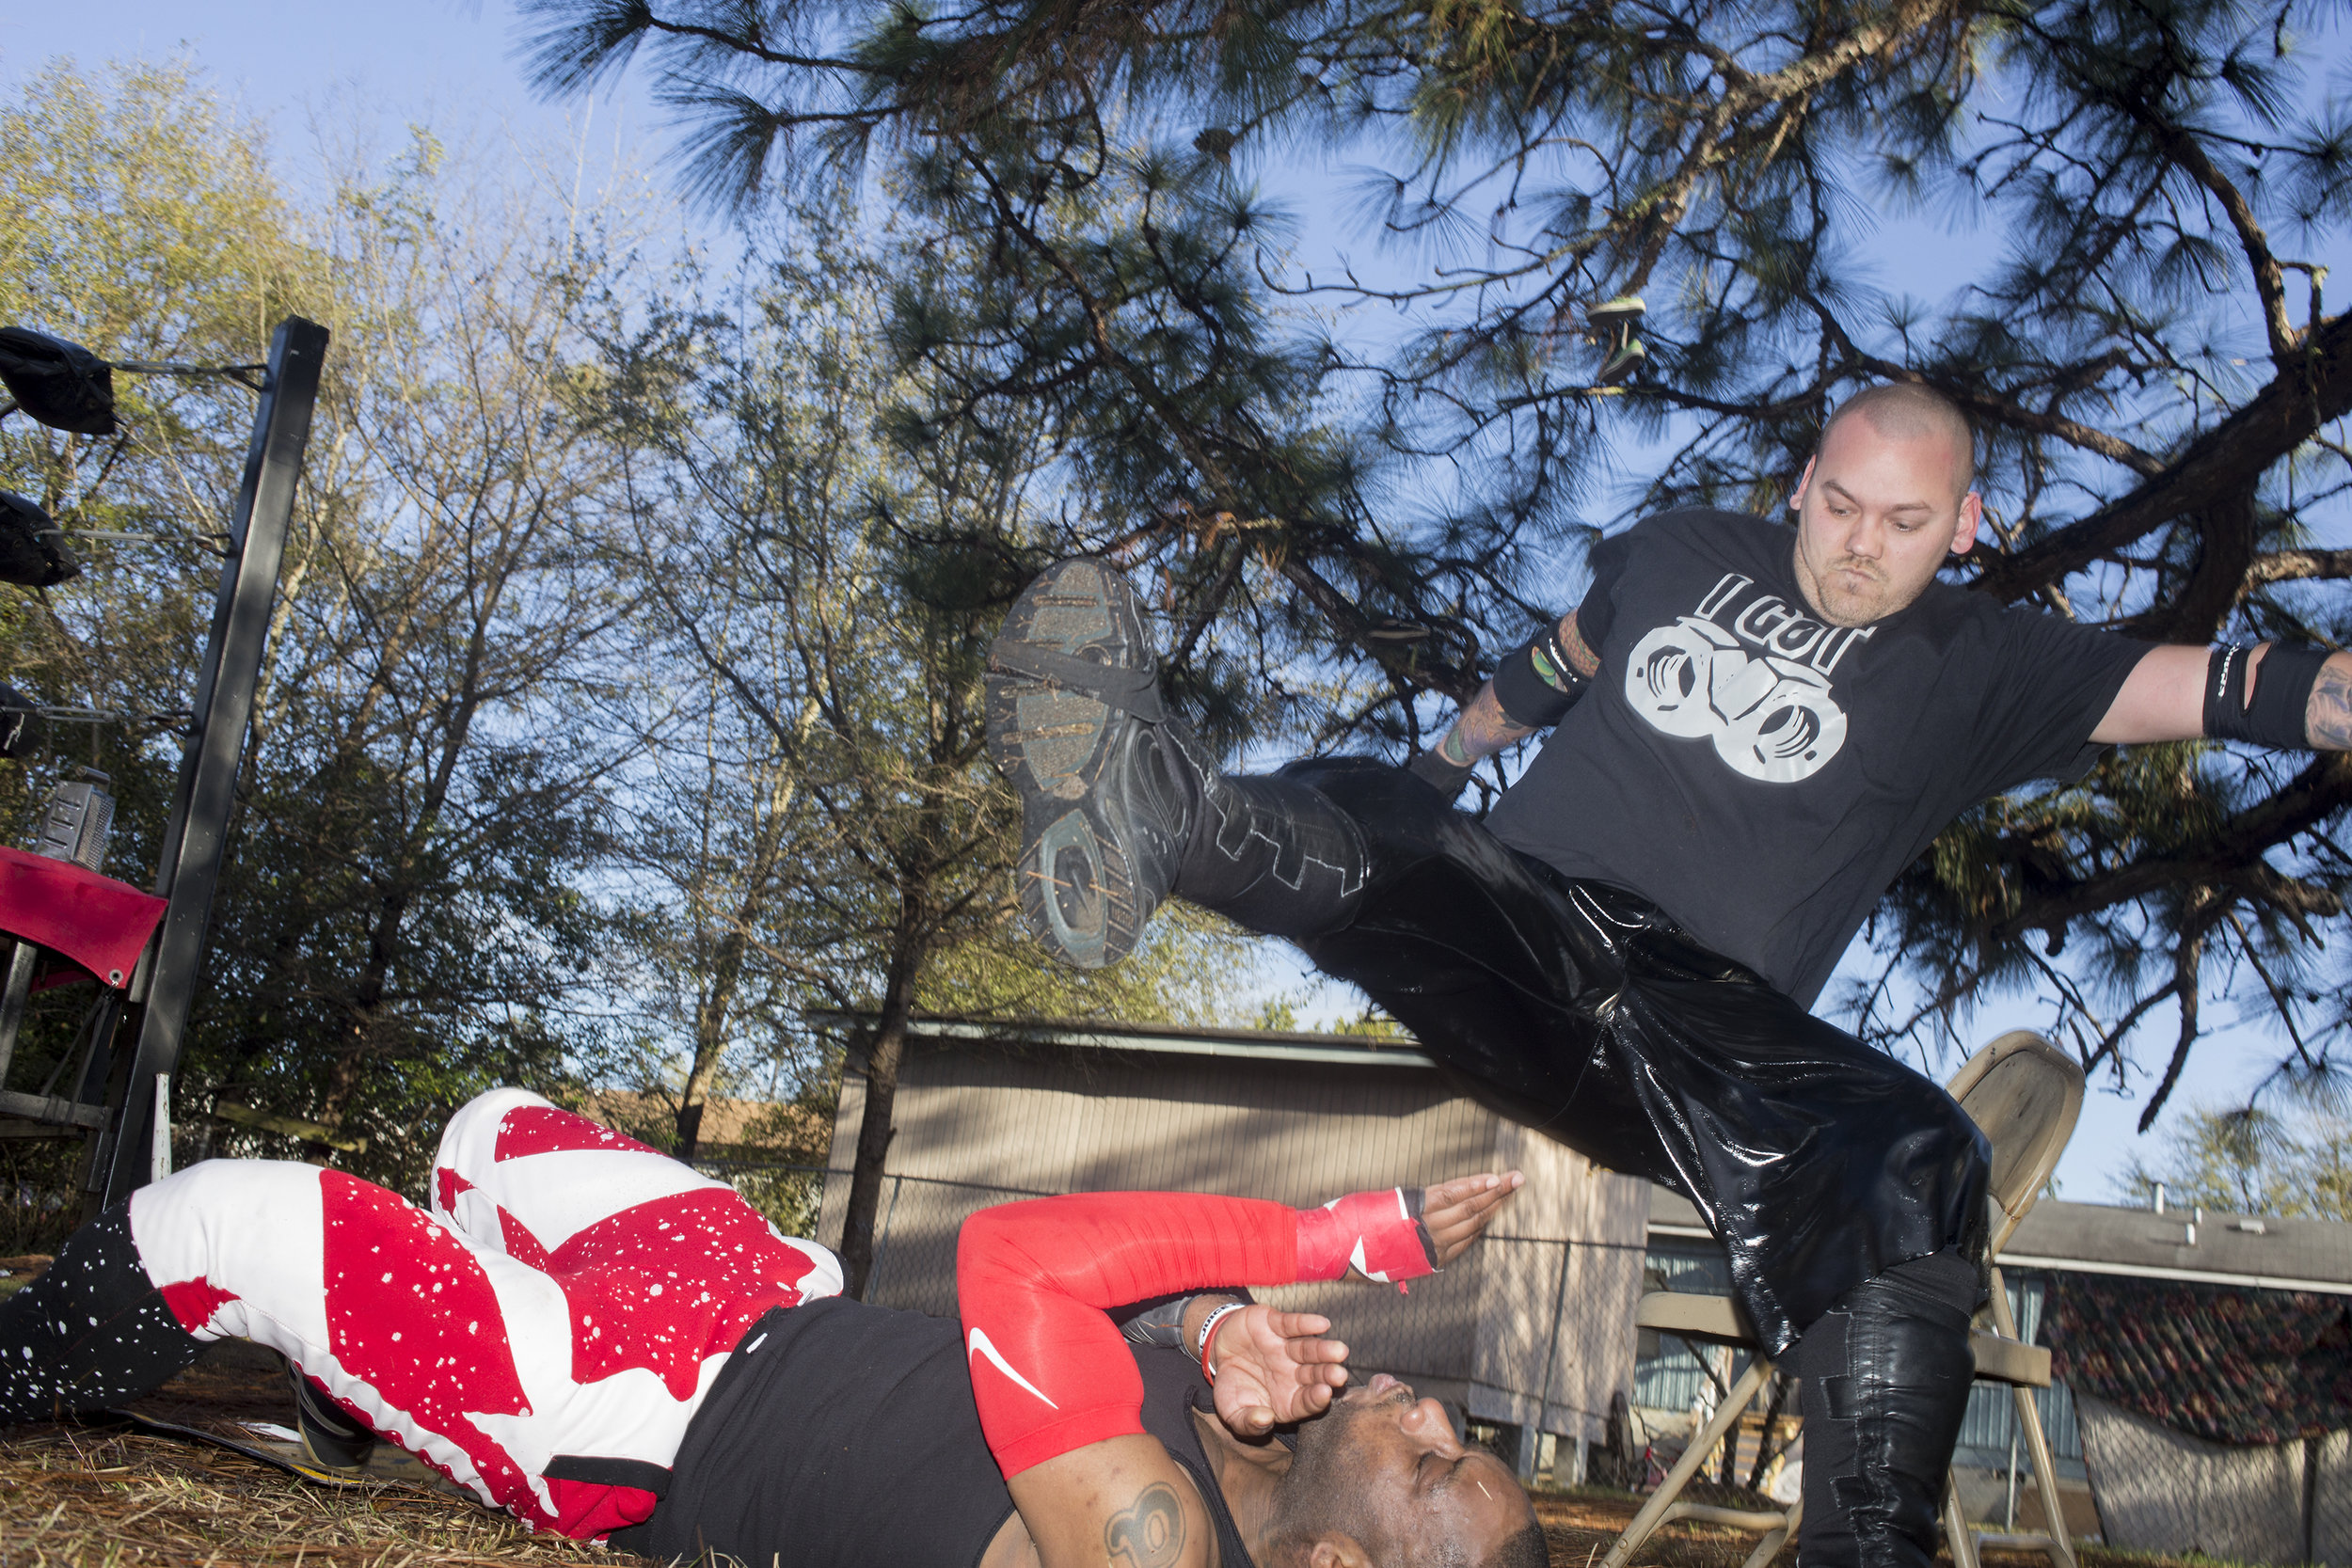 This series explores the underground world of backyard wrestling, where sport and theater collide and performative violence is an expression of creativity.